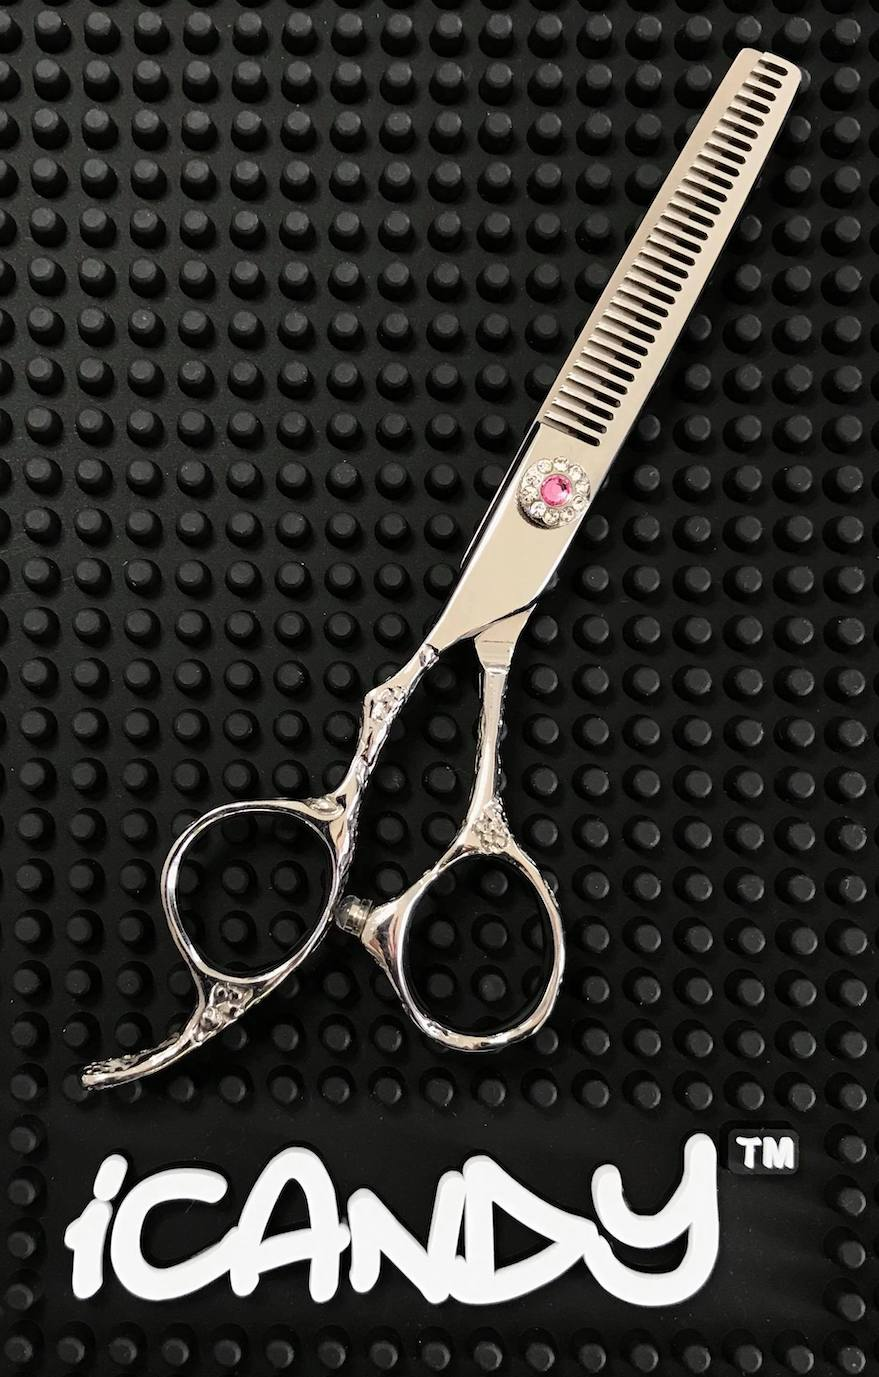 iCandy Dream Mirror Lefty Thinning Scissors - Limited Edition !  (5.5 inch)